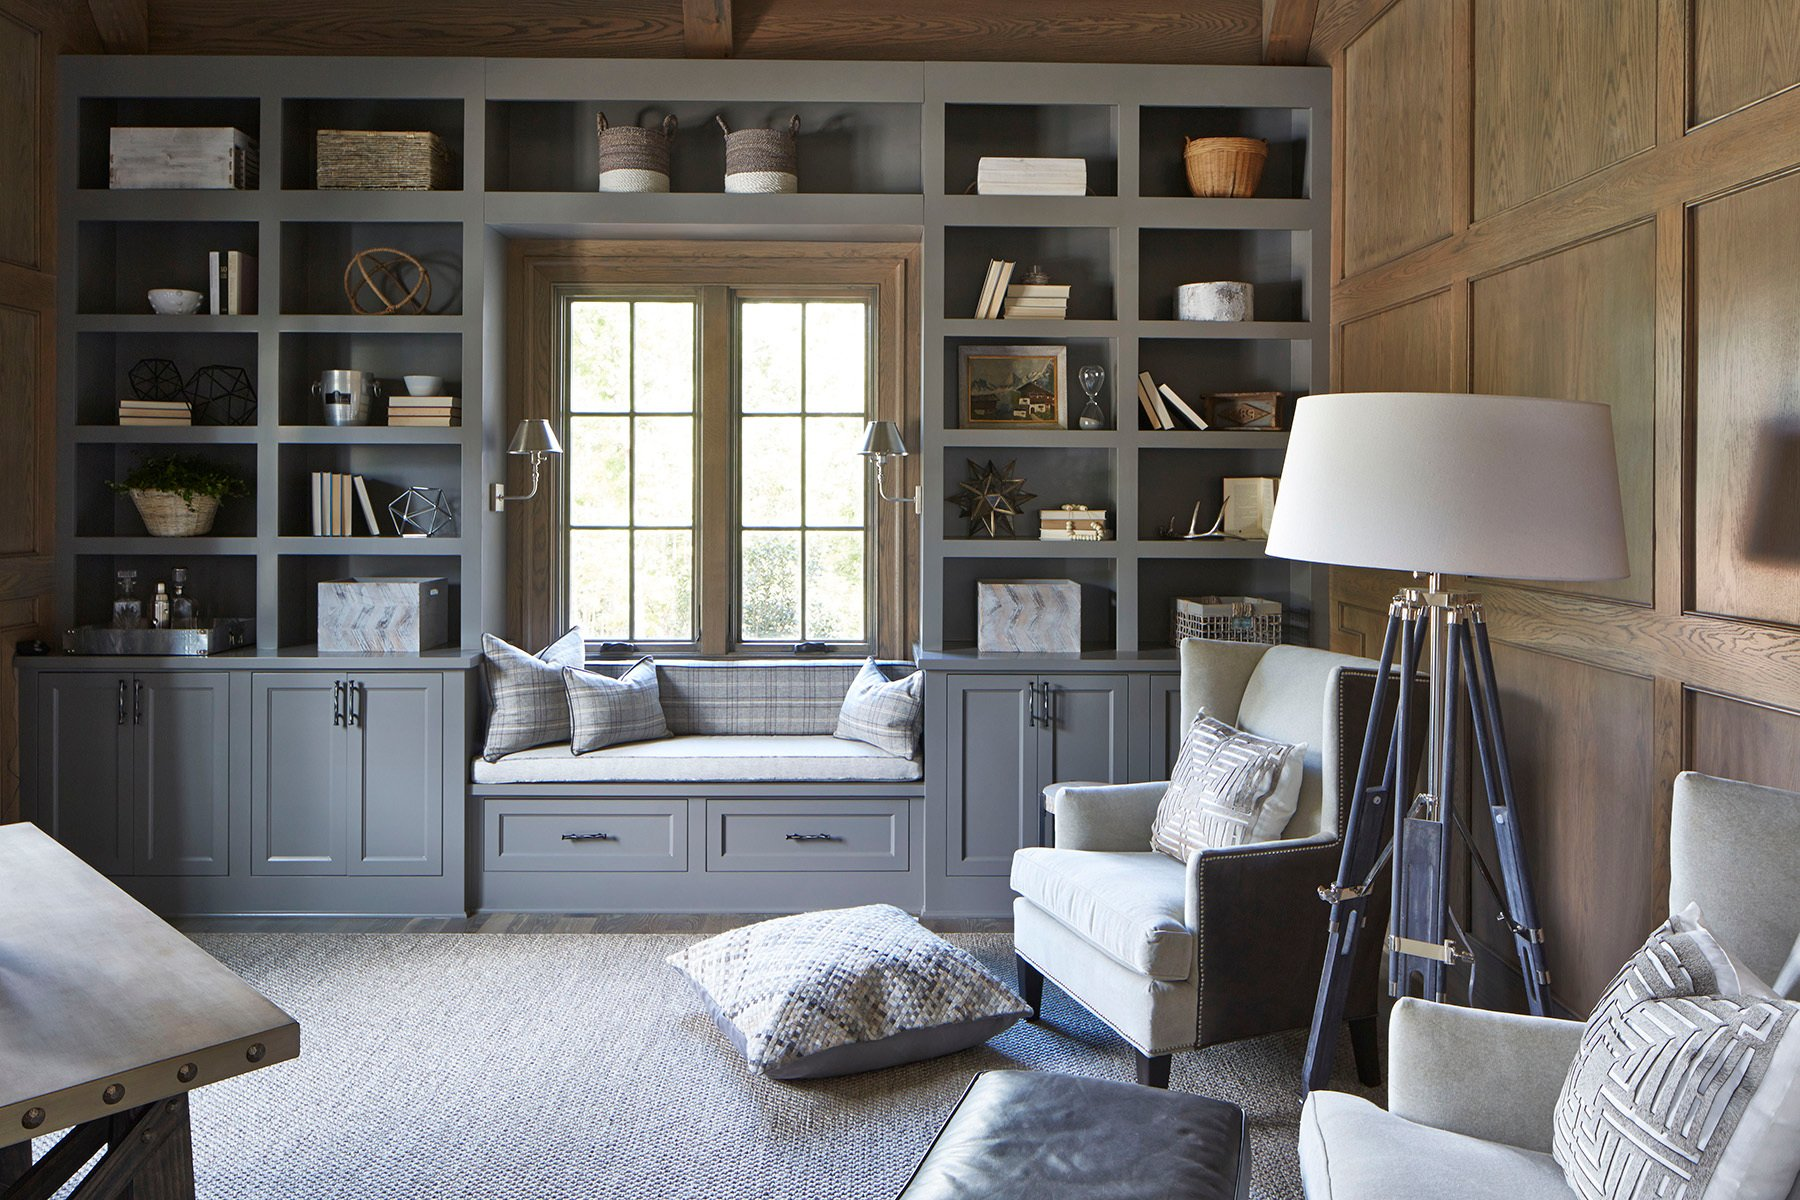 Window seat in a home office built between two built in shelves and cabinetry.